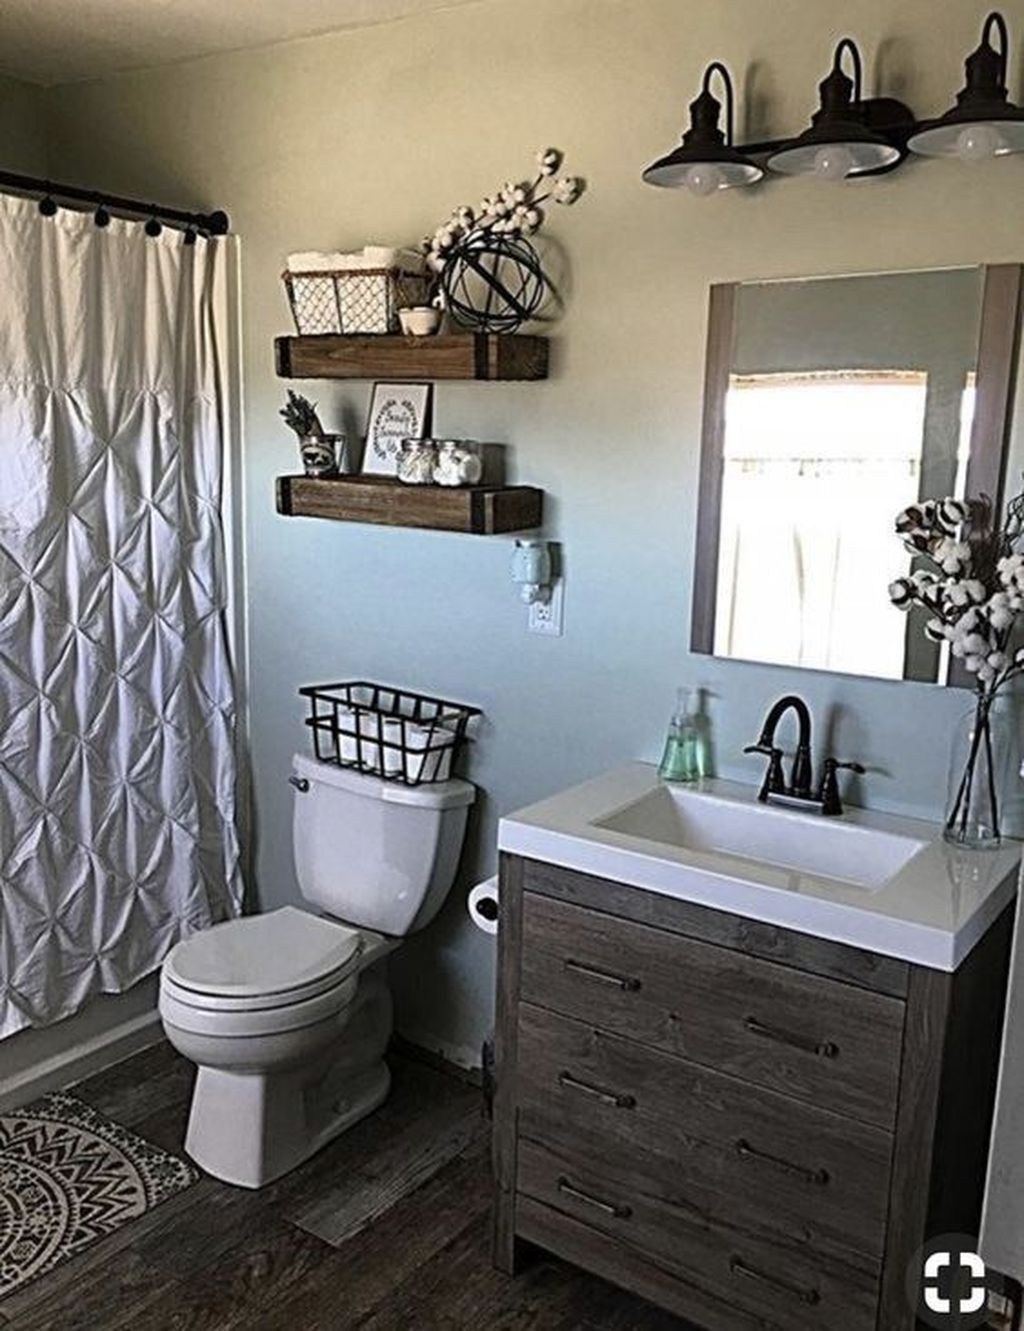 30 Splendid Small Bathroom Remodel Ideas For You Bathroom